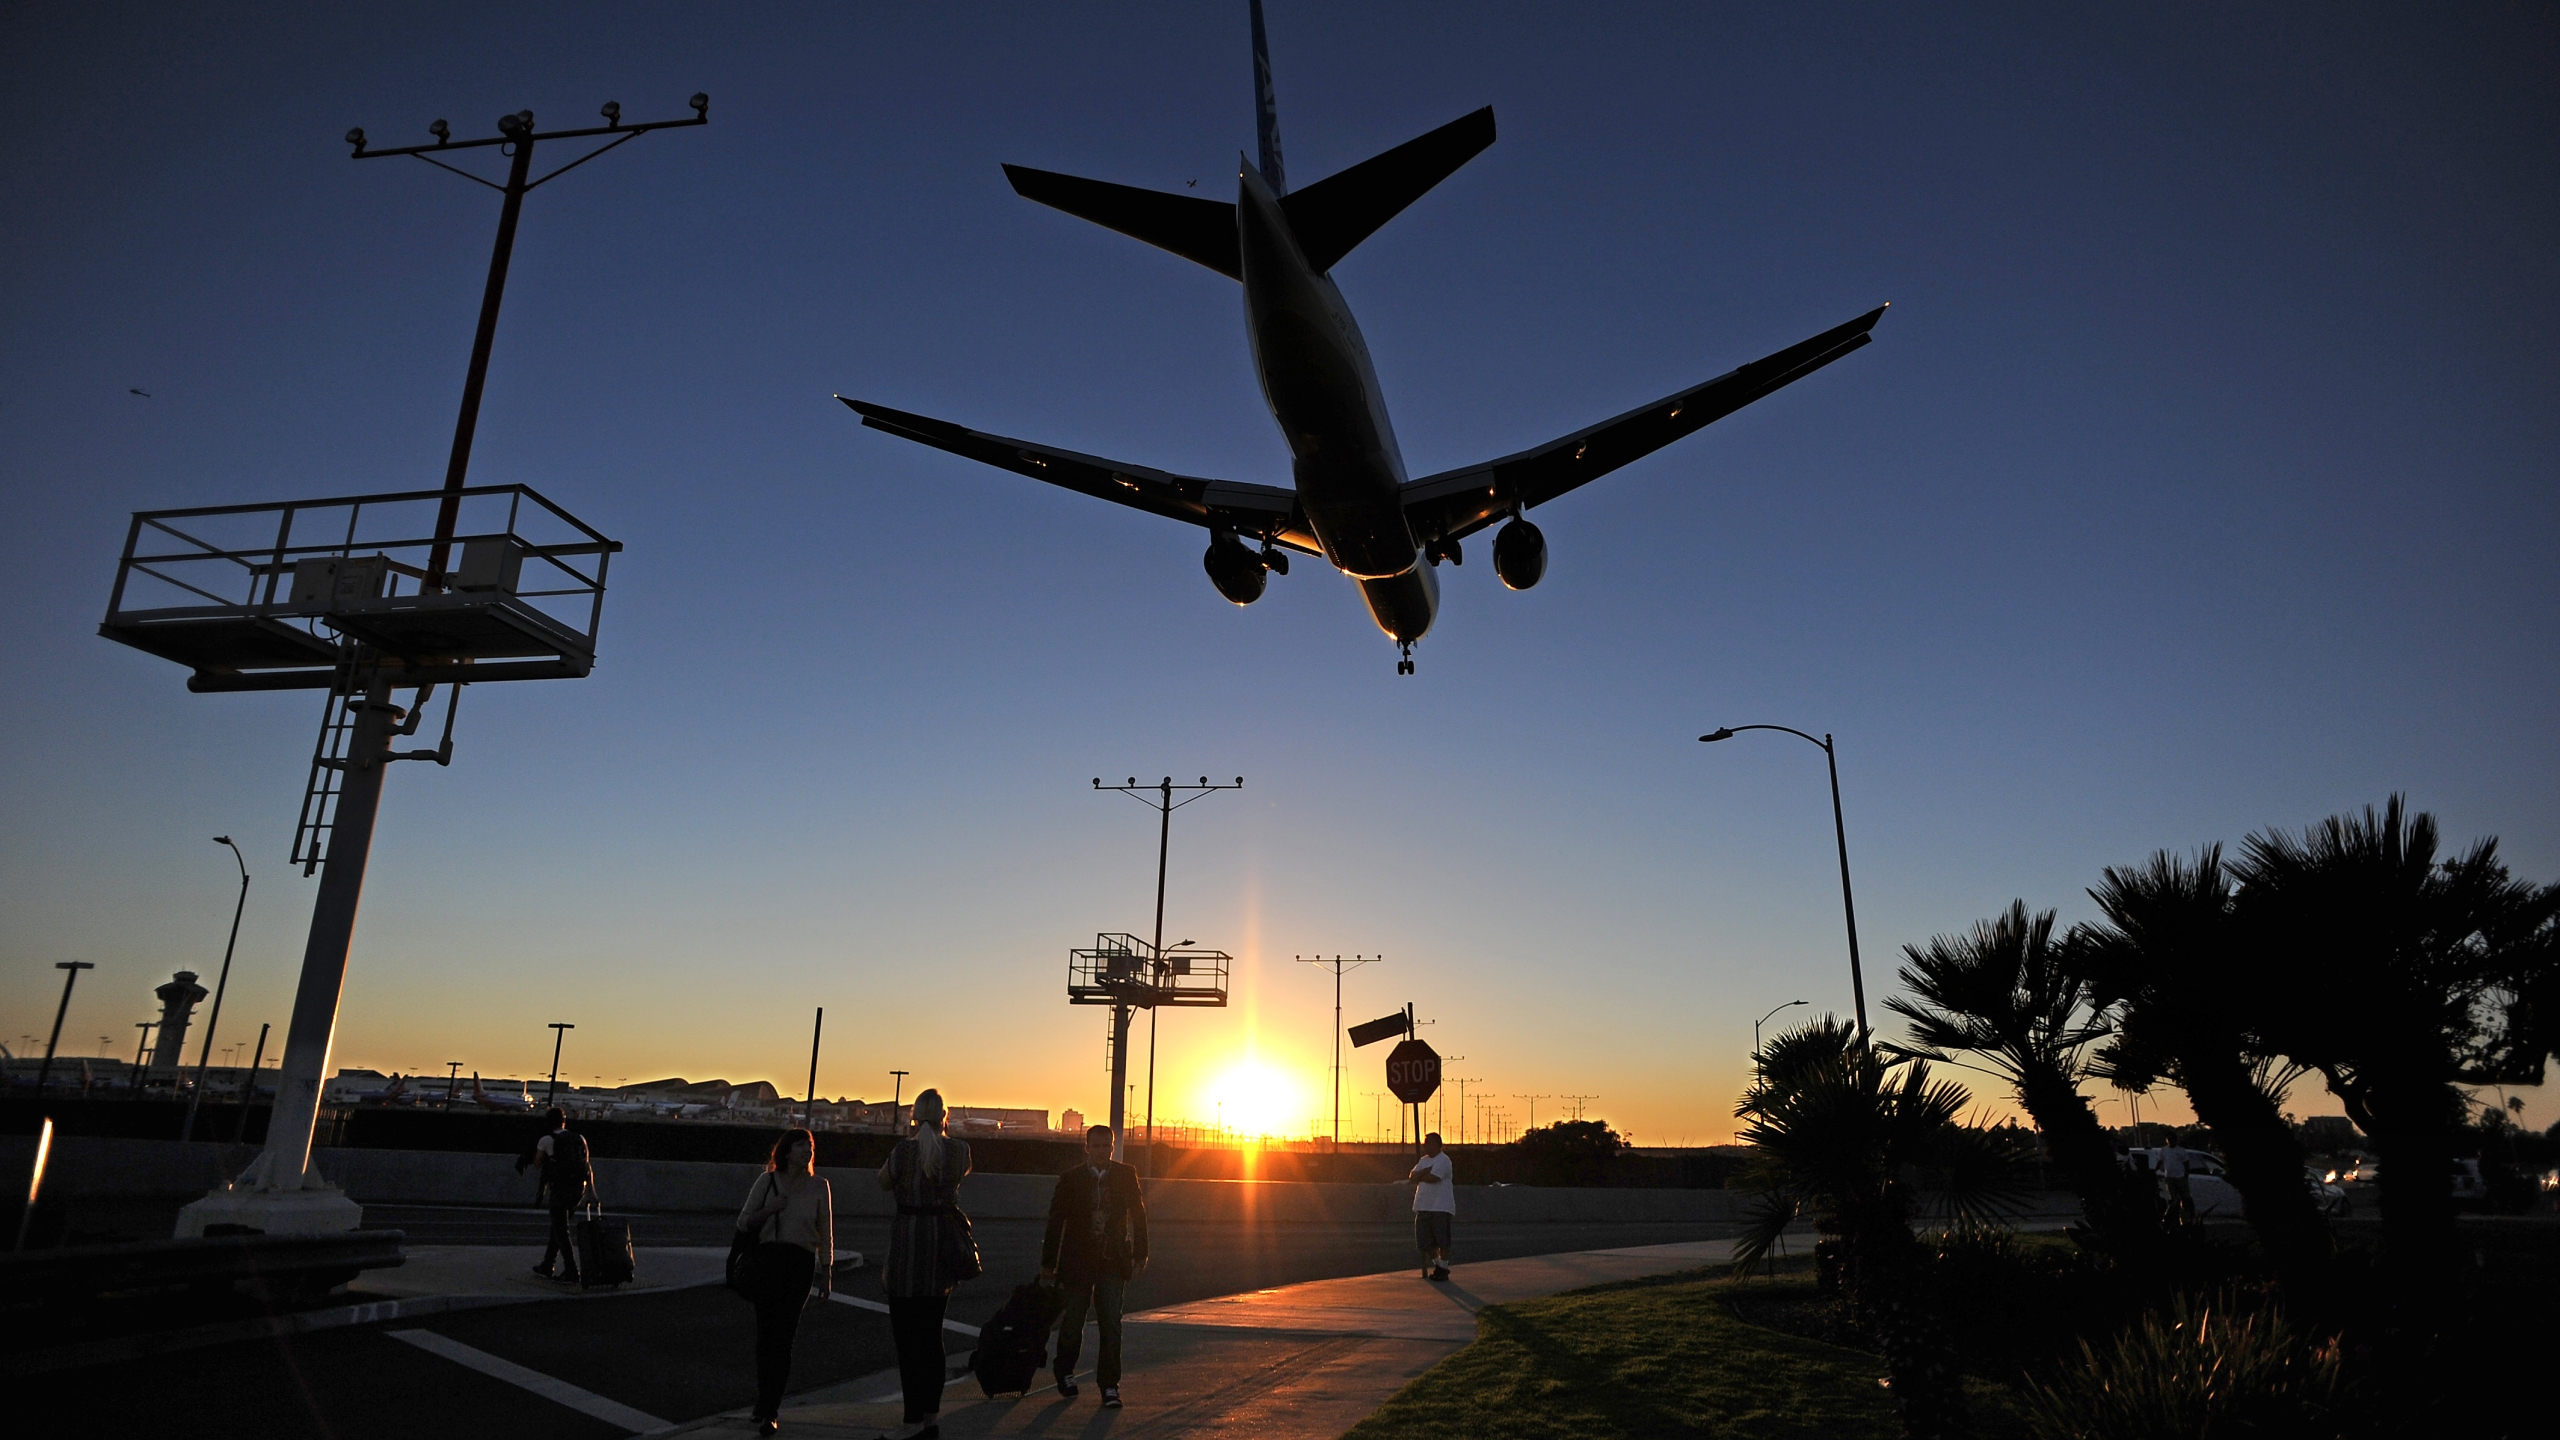 A plane lands at LAX airport. (Credit: ROBYN BECK/AFP/Getty Images)